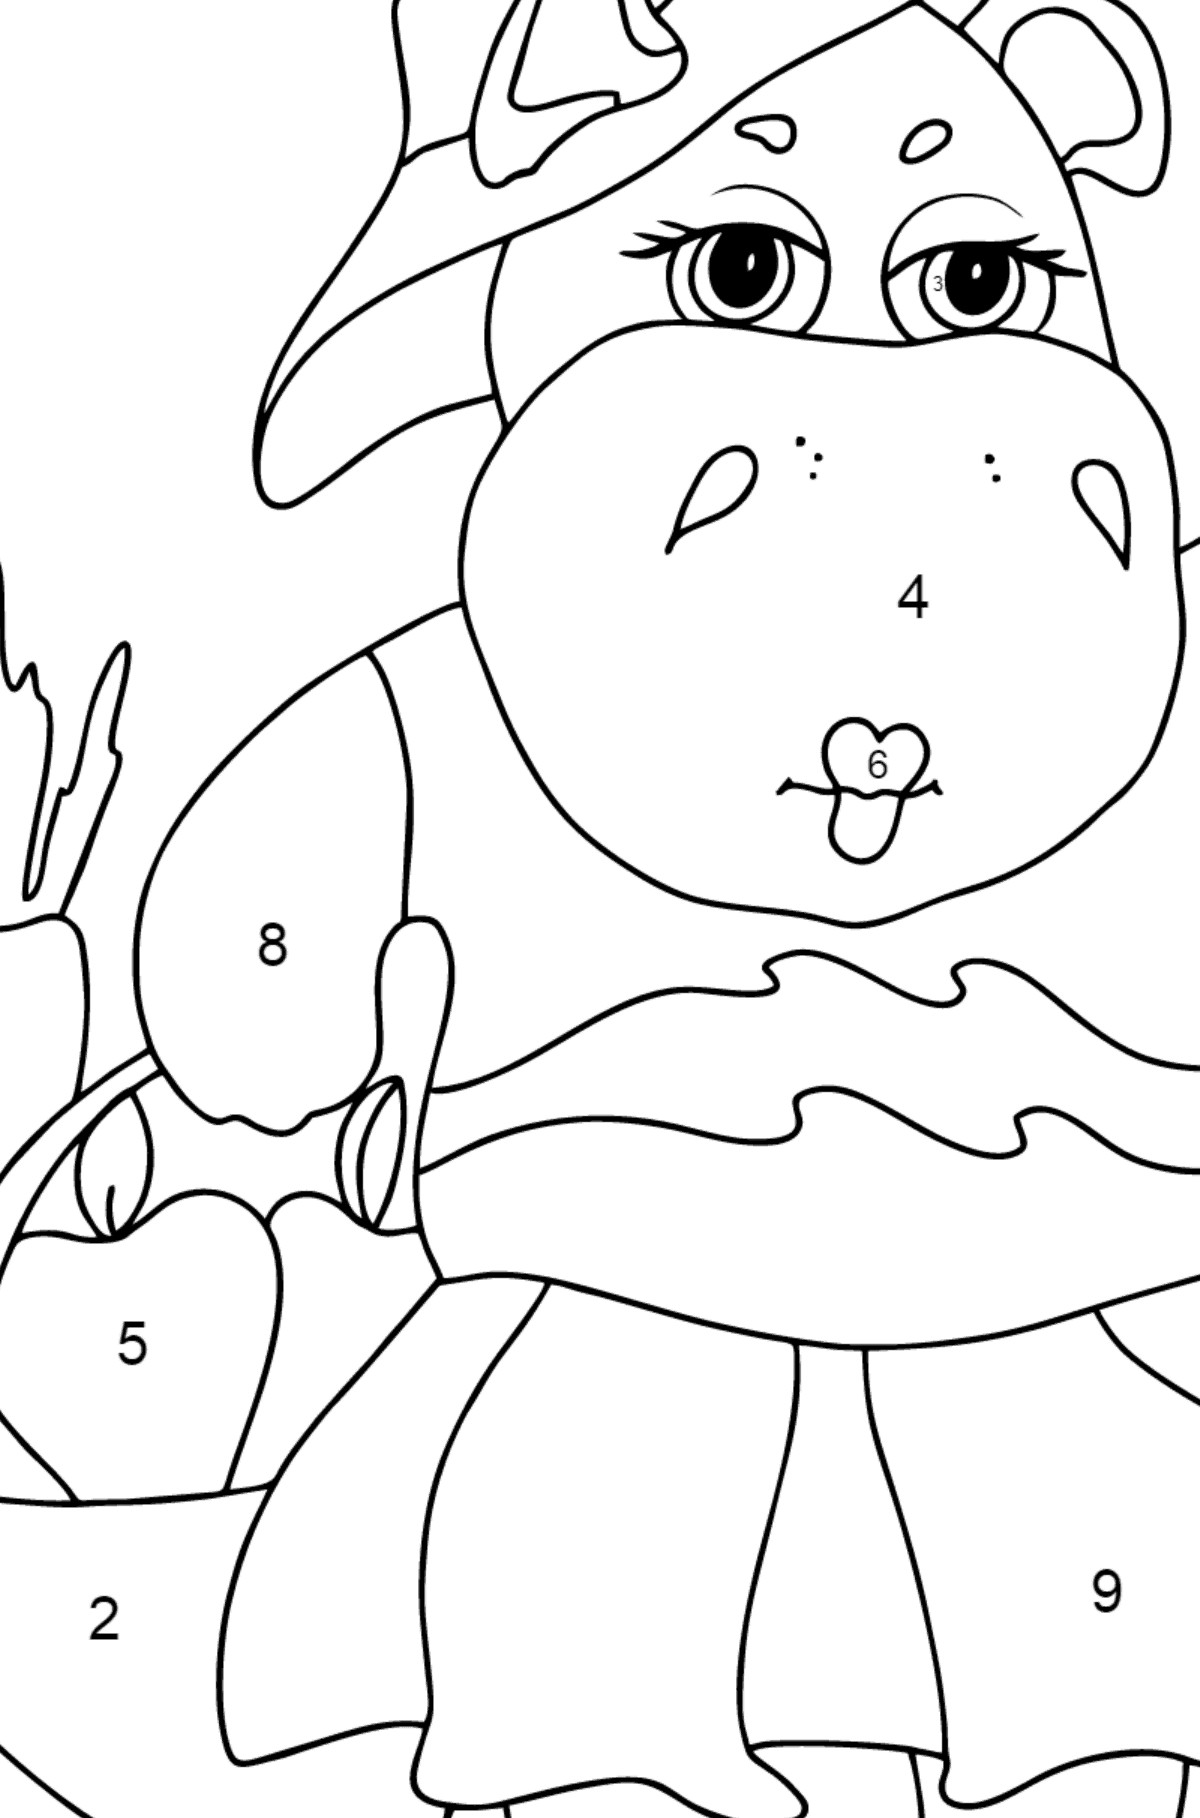 Coloring Page - A Hippo with a Basket of Carrots and Apples - Check it Out for Kids  - Color by Number